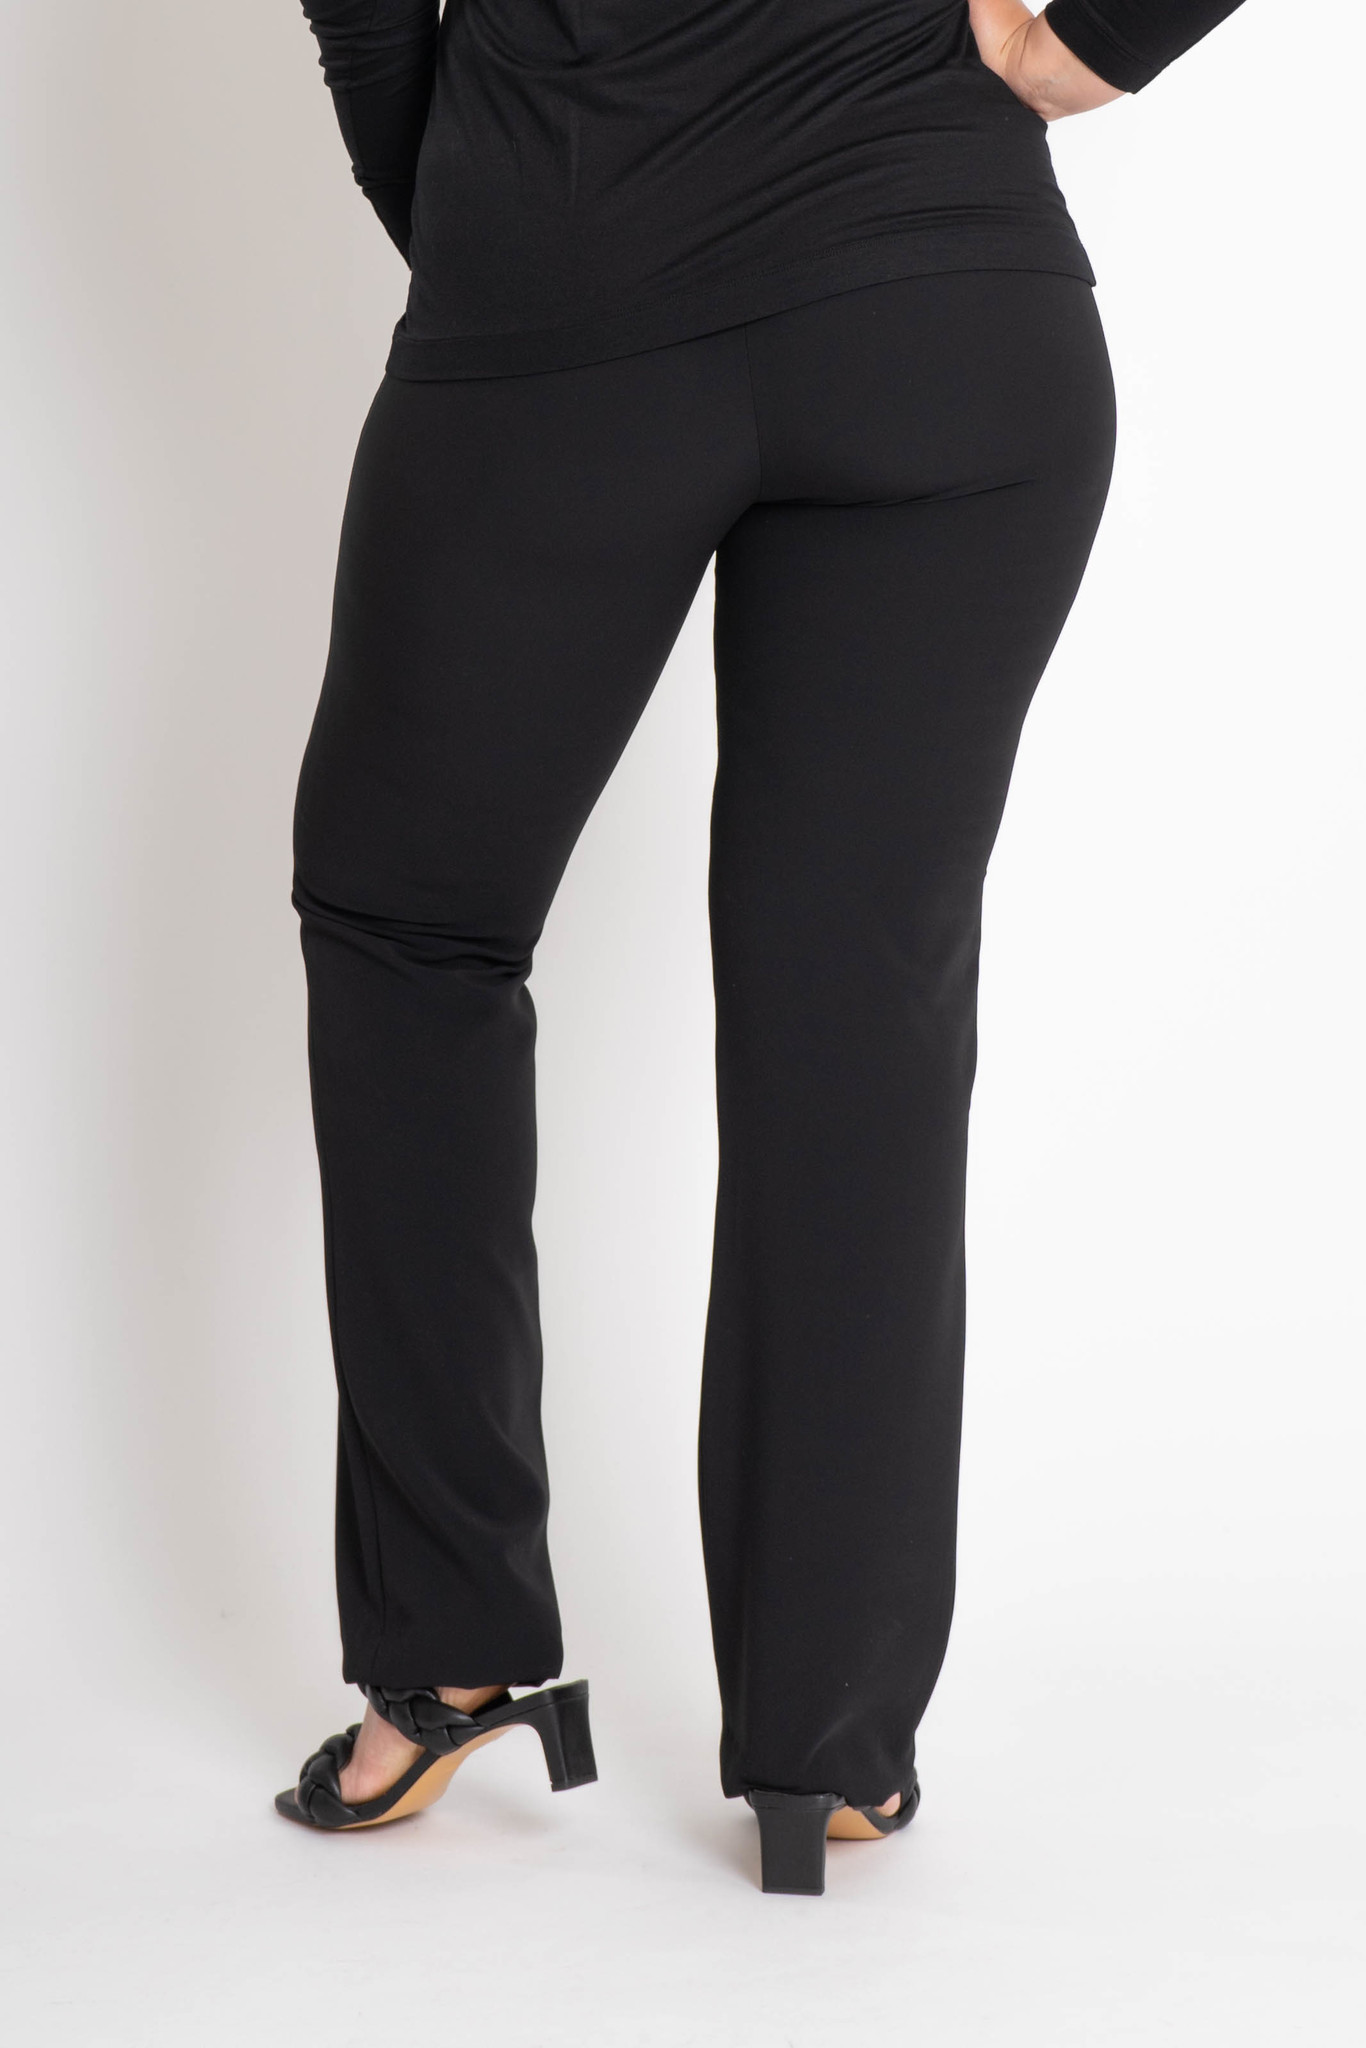 ZWOLF Trousers in Polyester stretch-3